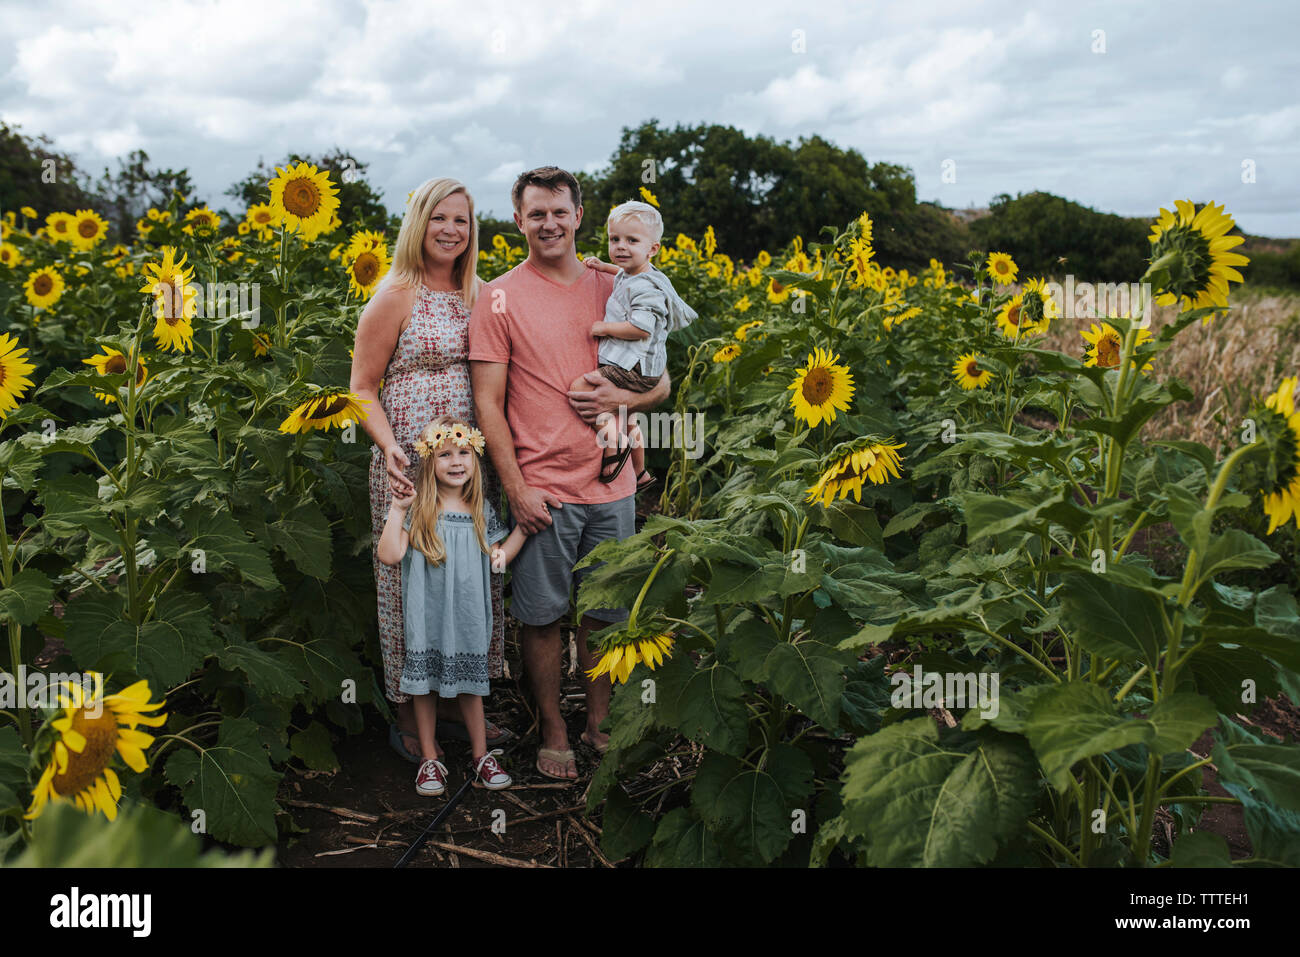 Full length portrait of smiling family standing amidst sunflowers Stock Photo